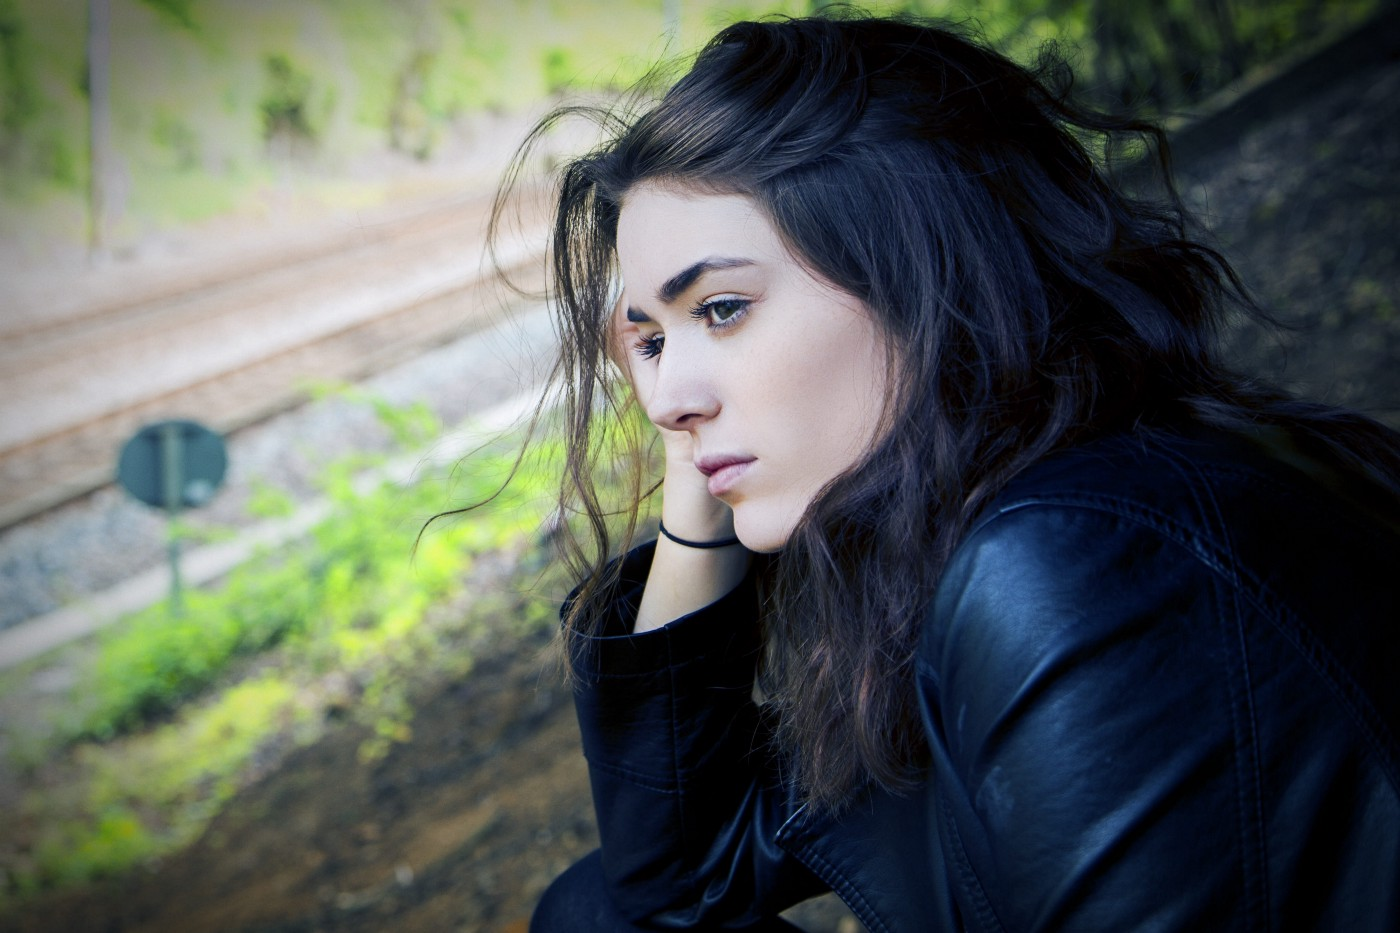 Woman with long brown hair looks pensively into the distance